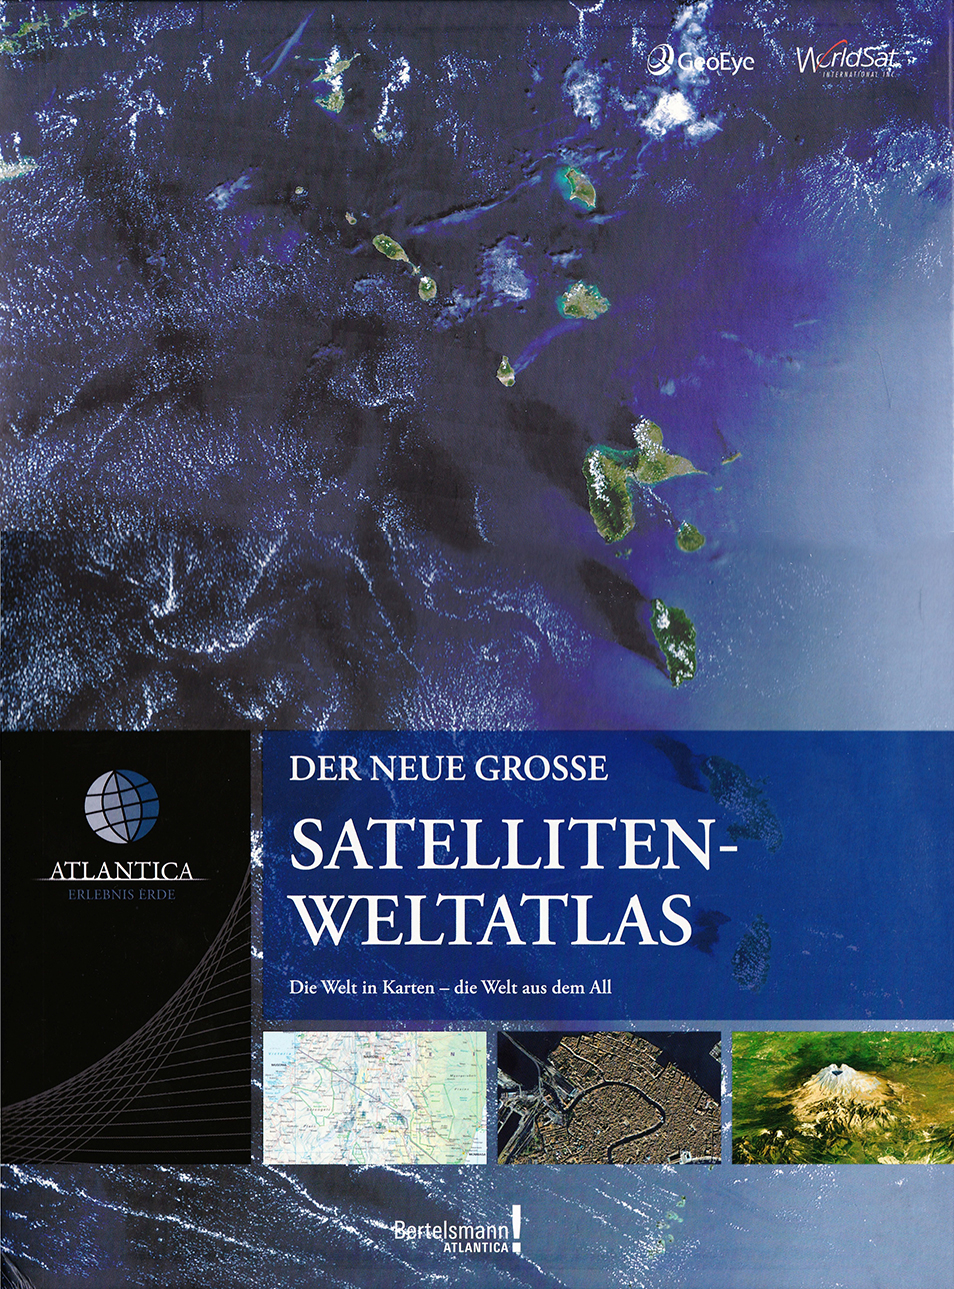 SatelliteAtlas-GermanSml